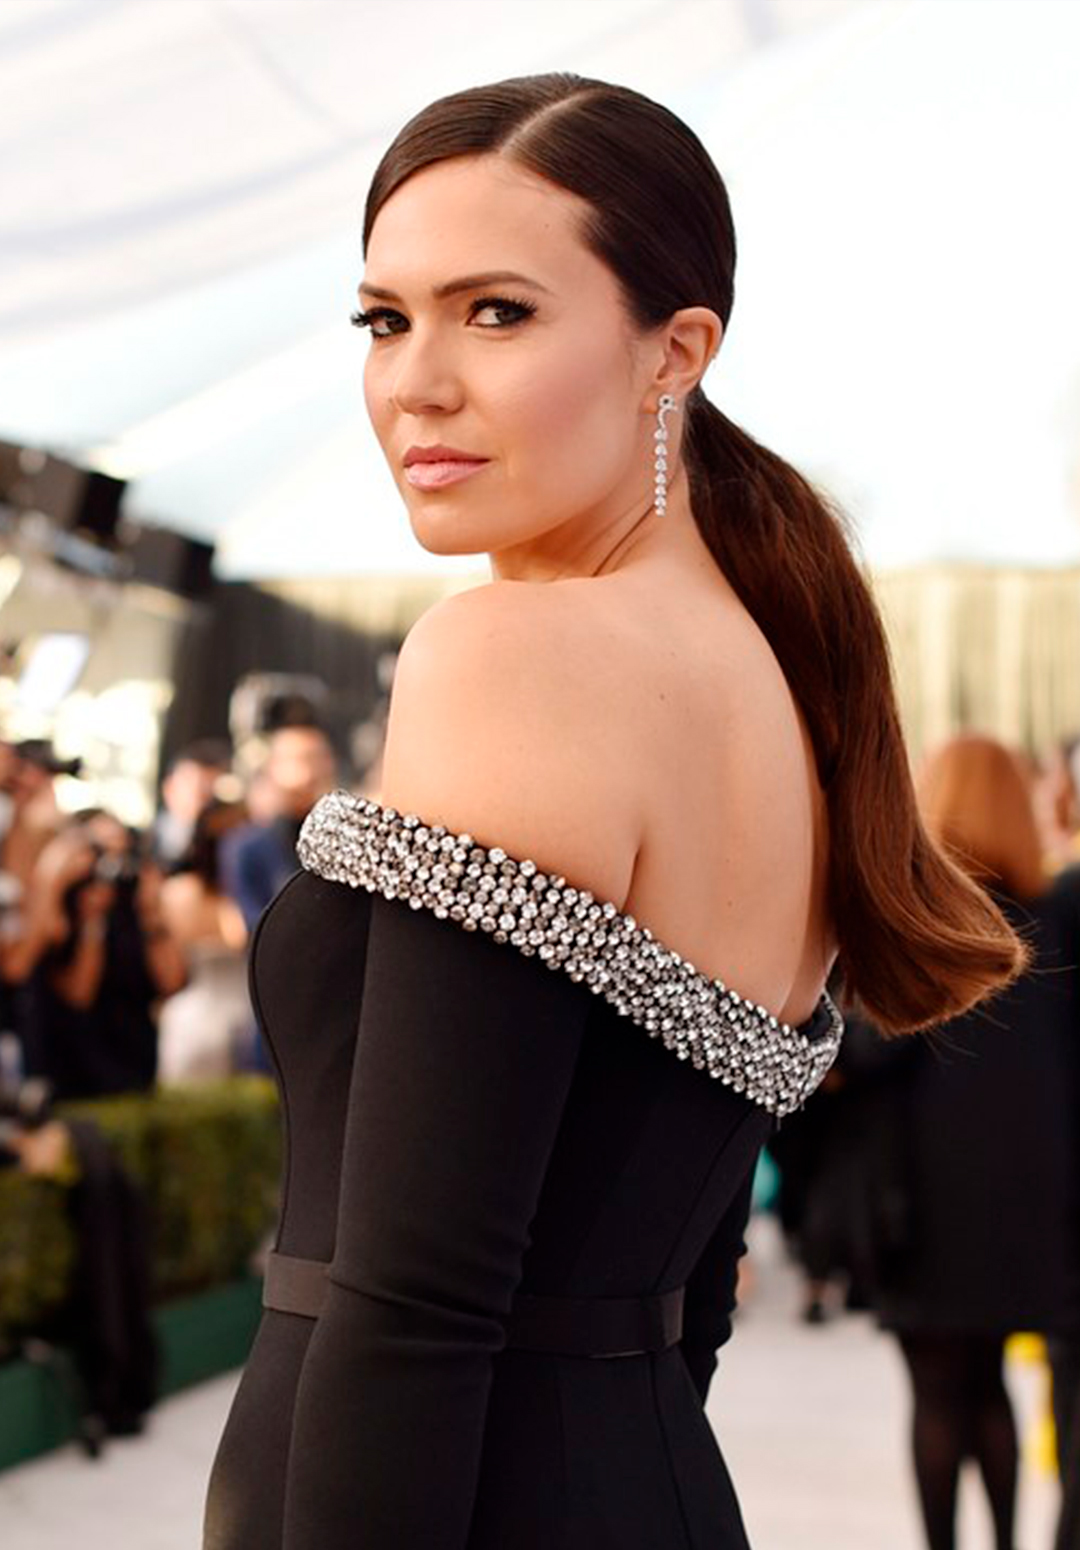 MANDY MOORE SAG AWARDS 2019 - FASHION WITH PURPOSE for UNICEF